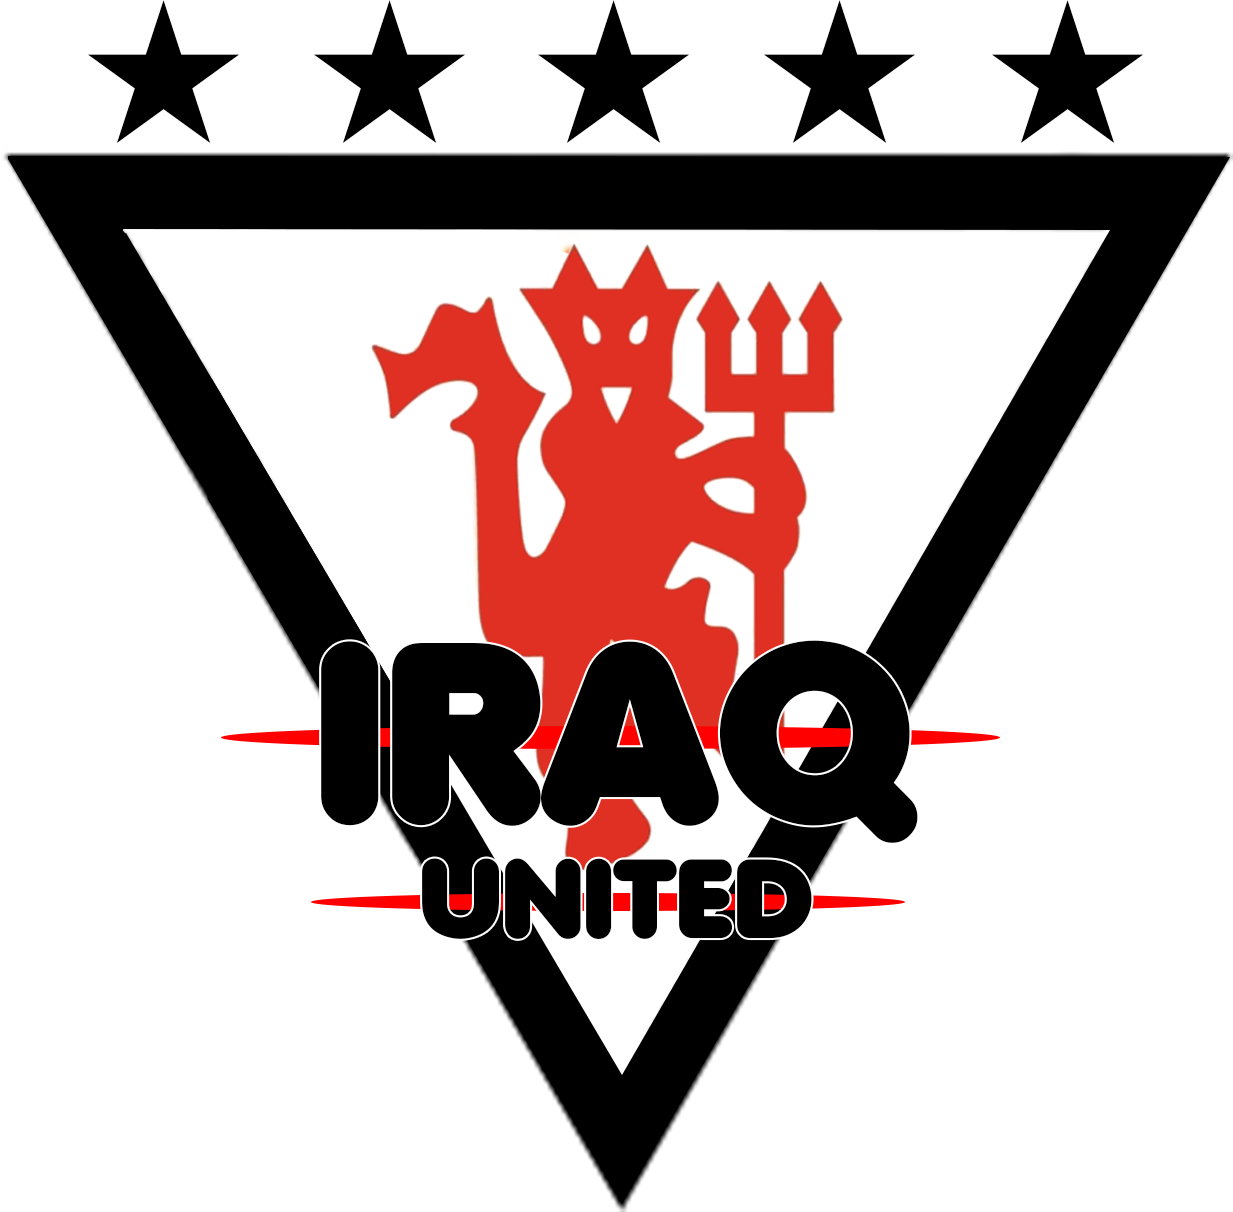 Download Manchester United Logo Clipart Love Manchester United The Red Devils Png Image With No Background Pngkey Com